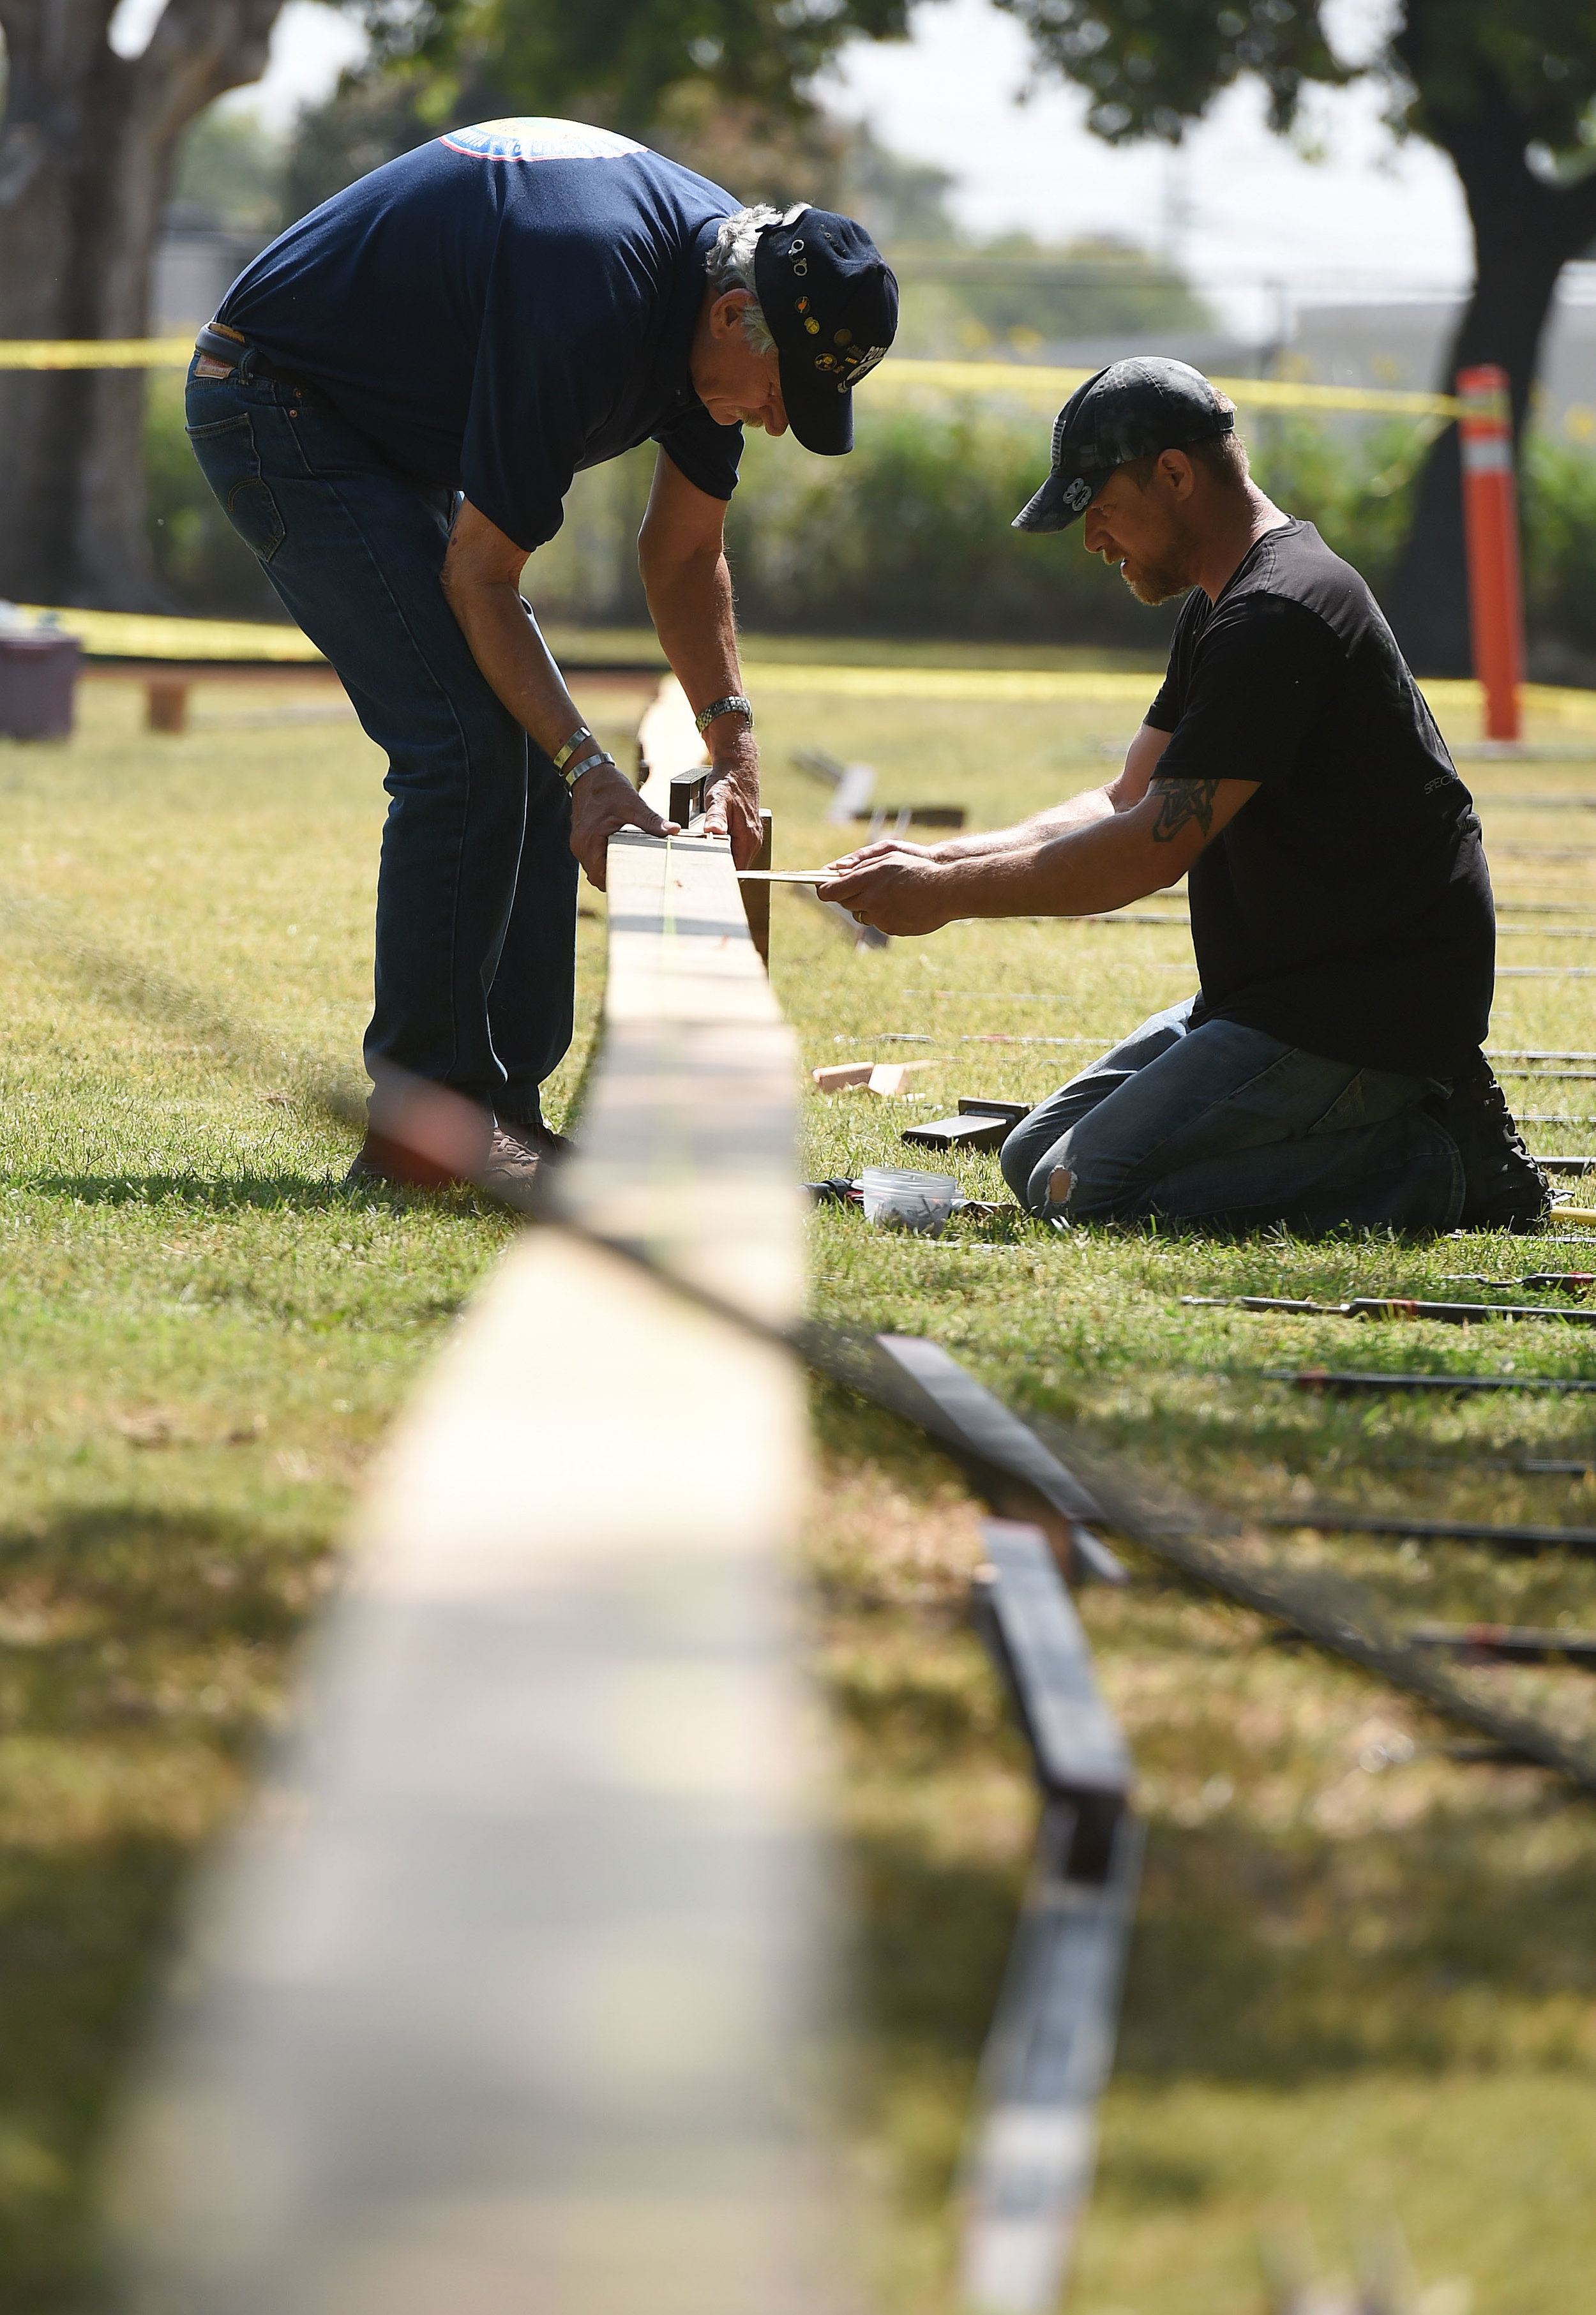 Vietnam Army veteran Steve Mackey (left), 68 from Jurupa Valley, assists Aaron Gray (right), 41 from White Pine, Michigan, as they install the base for the Vietnam Moving Wall Thursday at Ayala Park in Bloomington. Volunteers, many being Vietnam veterans, helped construct the Vietnam Moving Wall in Ayala Park in Bloomington Thursday June 7, 2018. The wall, containing 58,318 names, with 132 being from San Bernardino County, will be on display 24-hours a day beginning Friday and lasting through Monday.